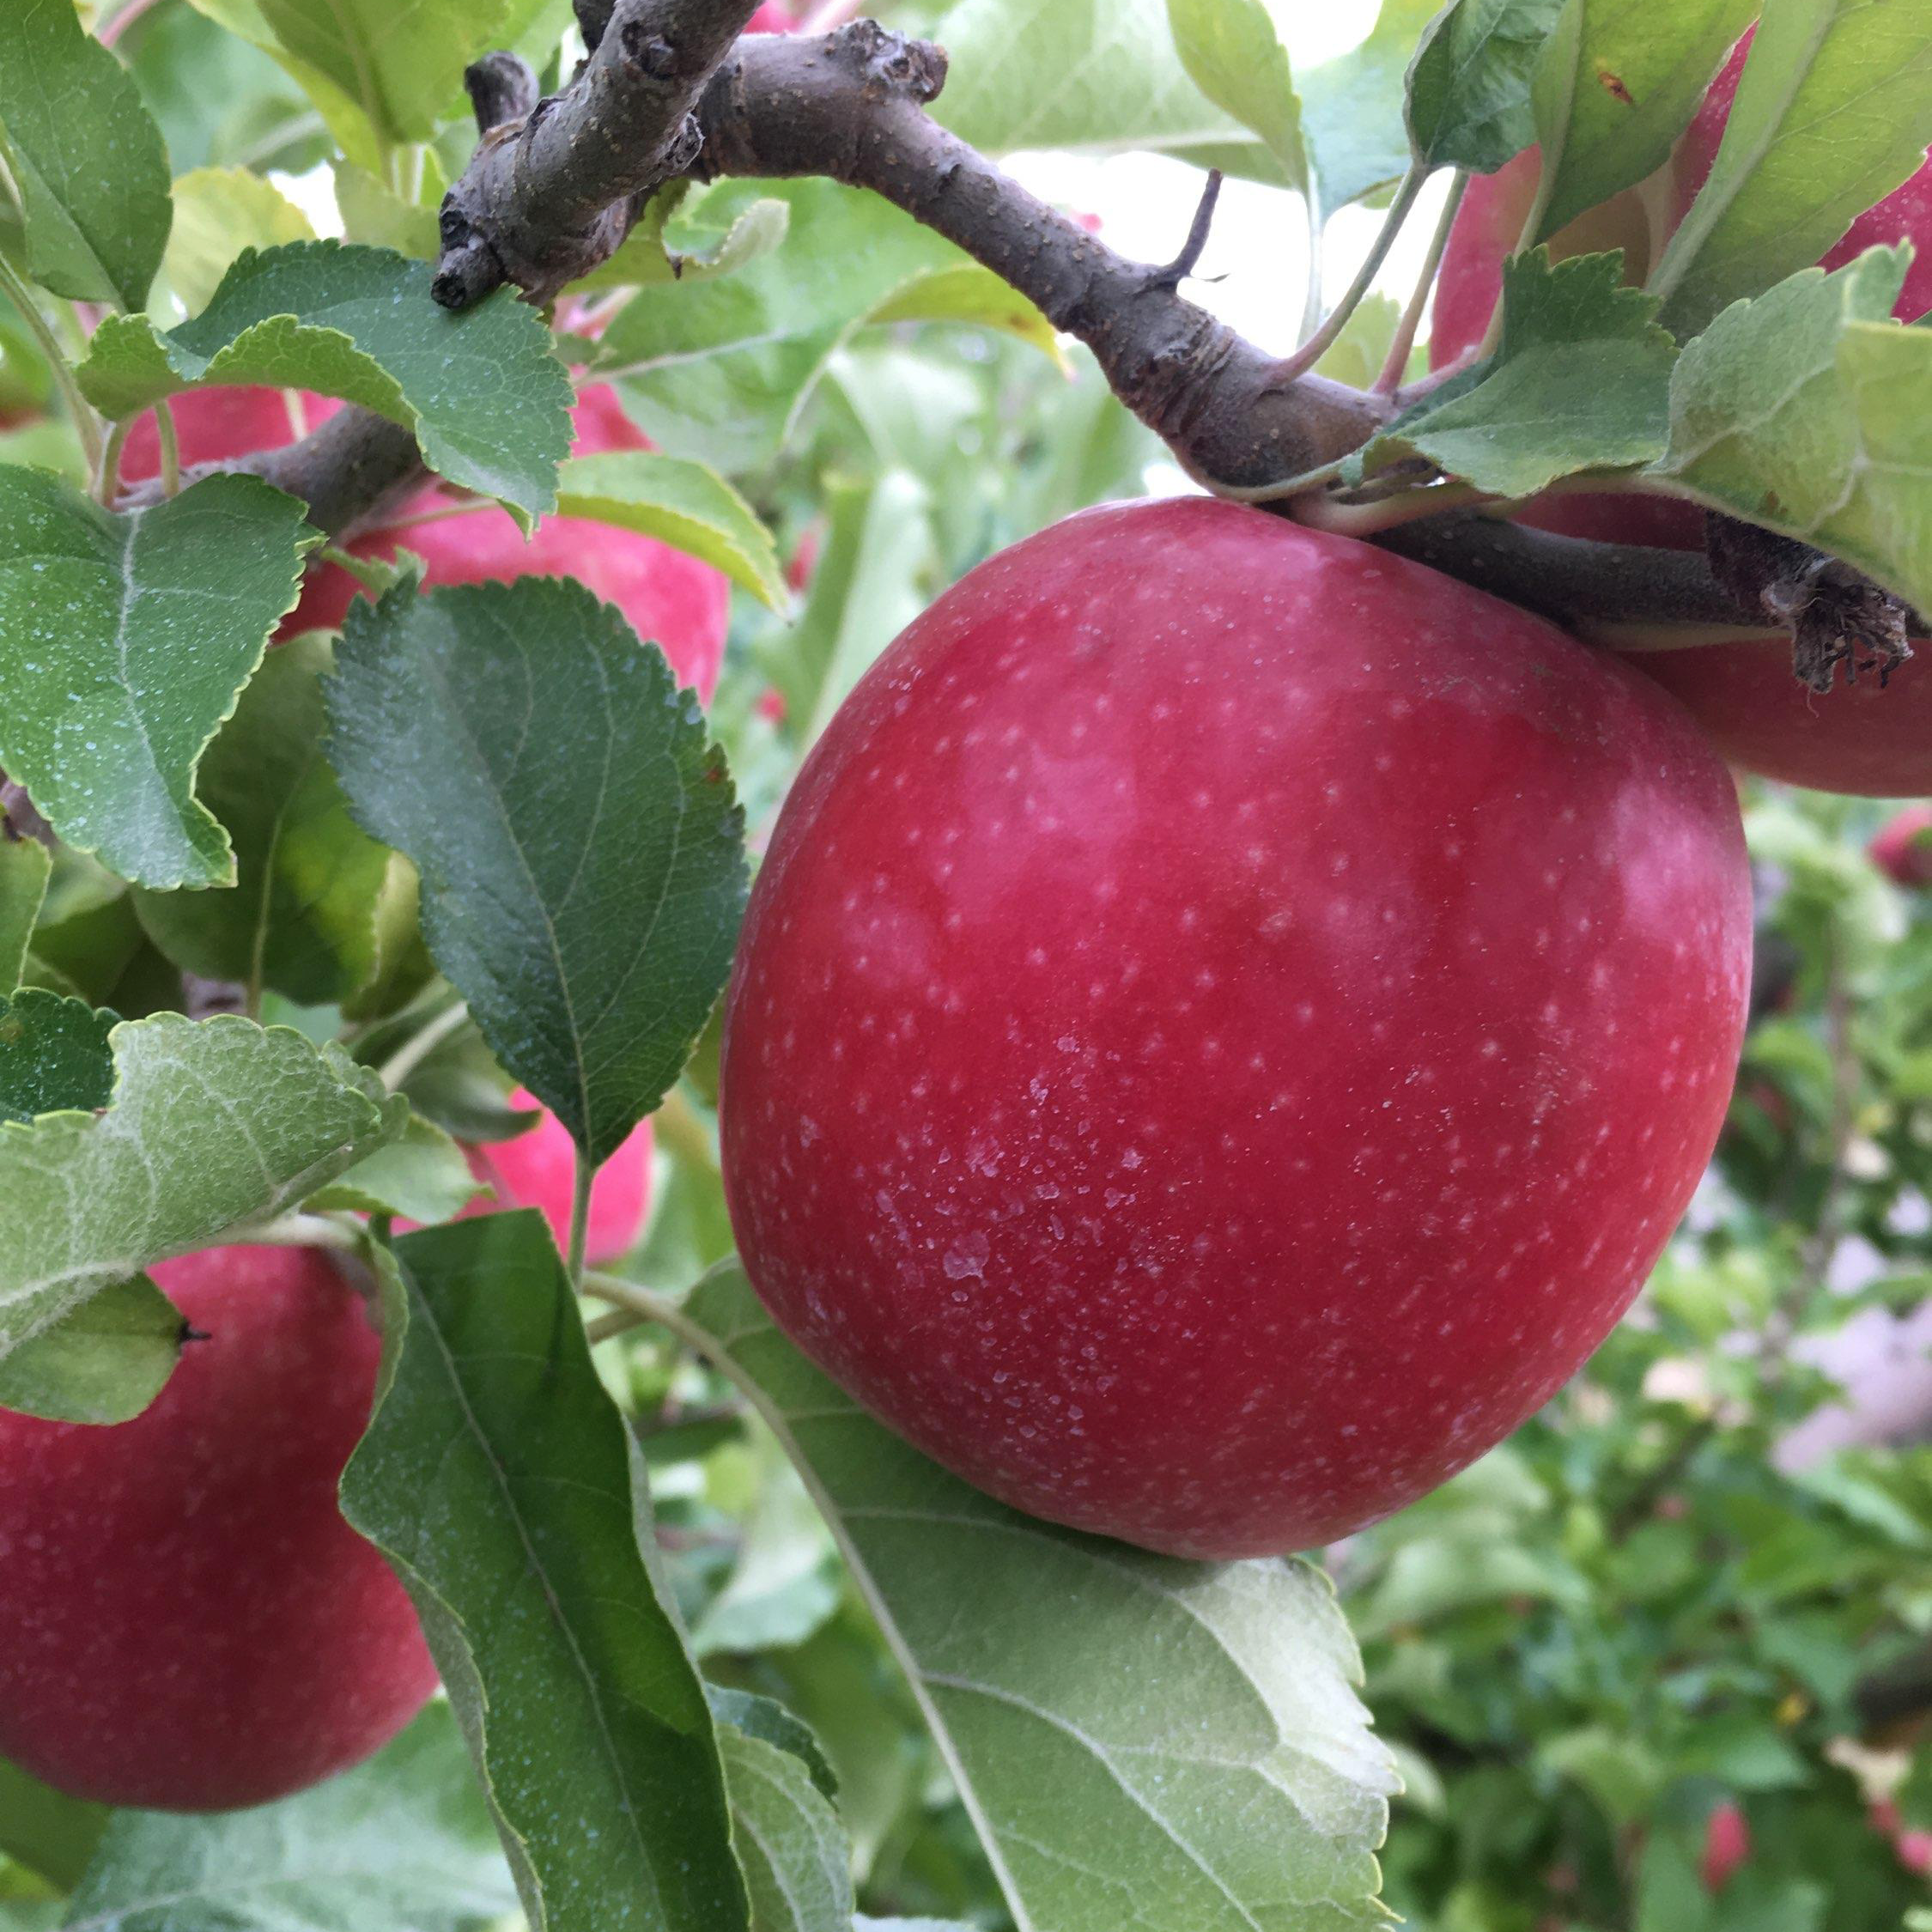 Cripps Pink - Our favorite sharp dessert apple was bred in Australia in 1973 by researcher John Cripps. With high sugar and a higher acid level this dessert fruit is good both for eating and making cider. We consider this an excellent blending apple and use it in many of our ciders.